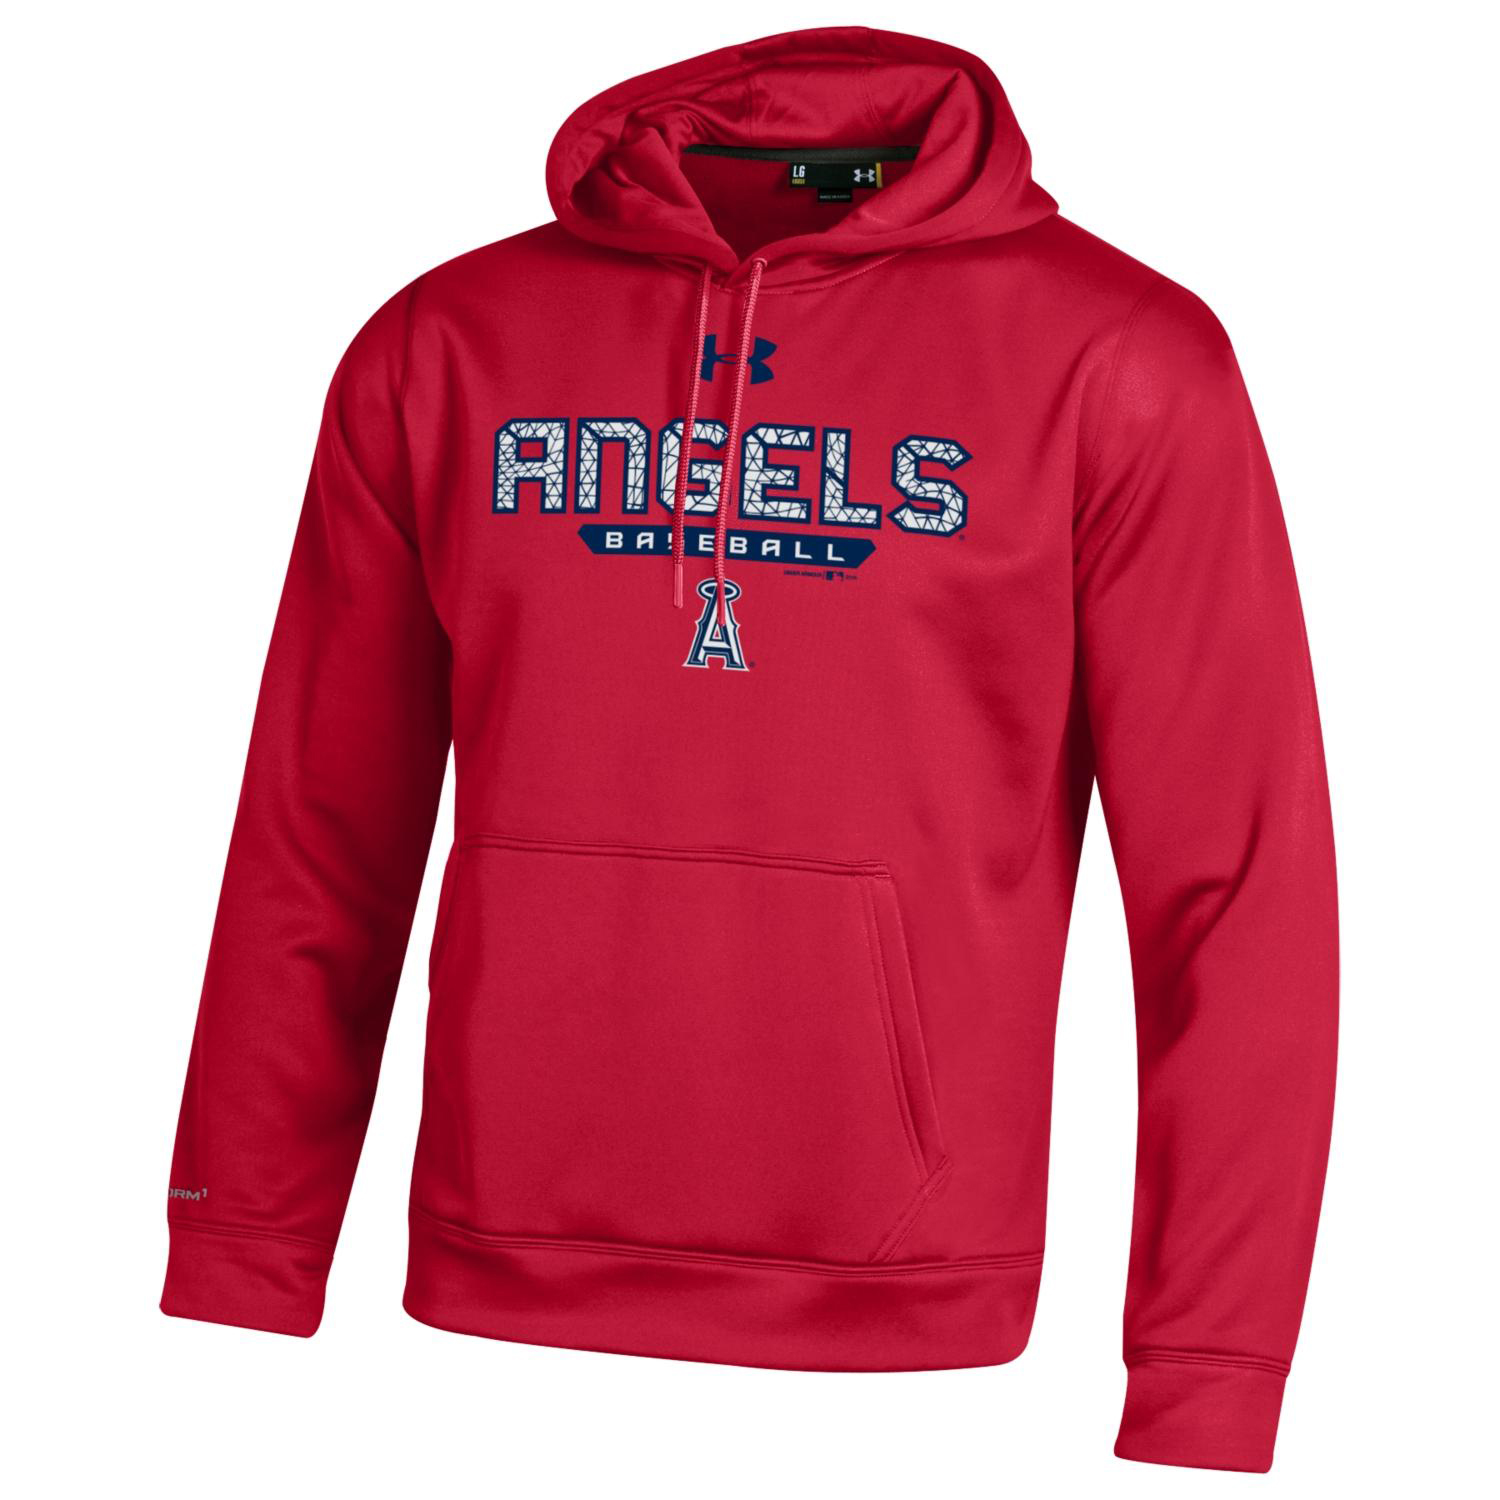 Los Angeles Angels Under Armour Pullover Hoodie - Red